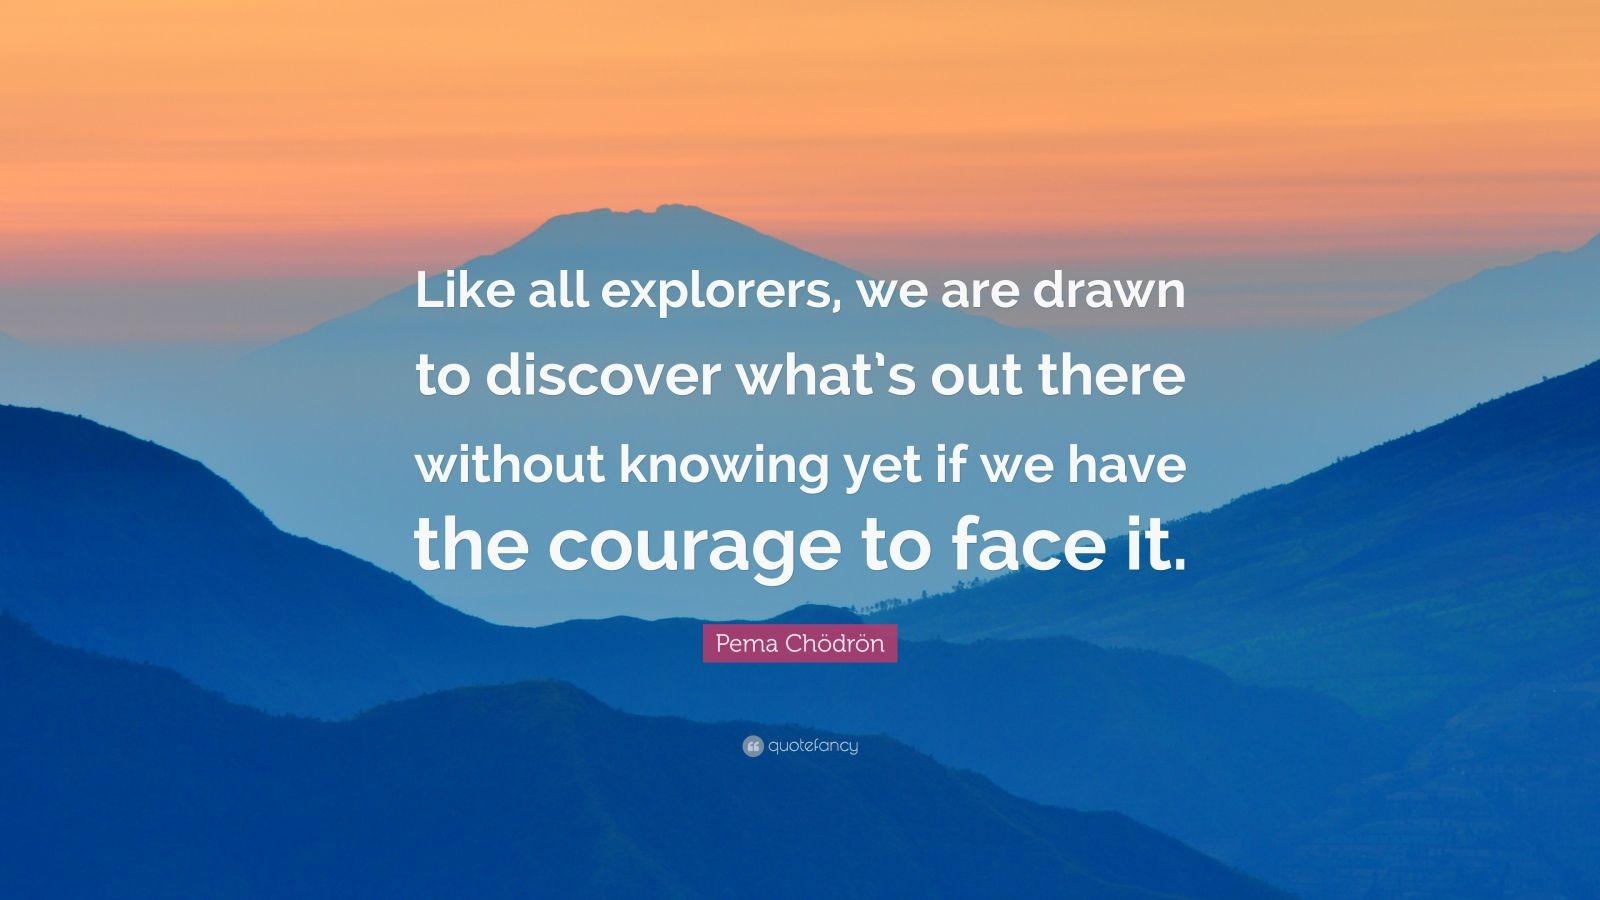 """Pema Chödrön Quote: """"Like all explorers, we are drawn to discover what's out there without knowing yet if we have the courage to face it."""""""